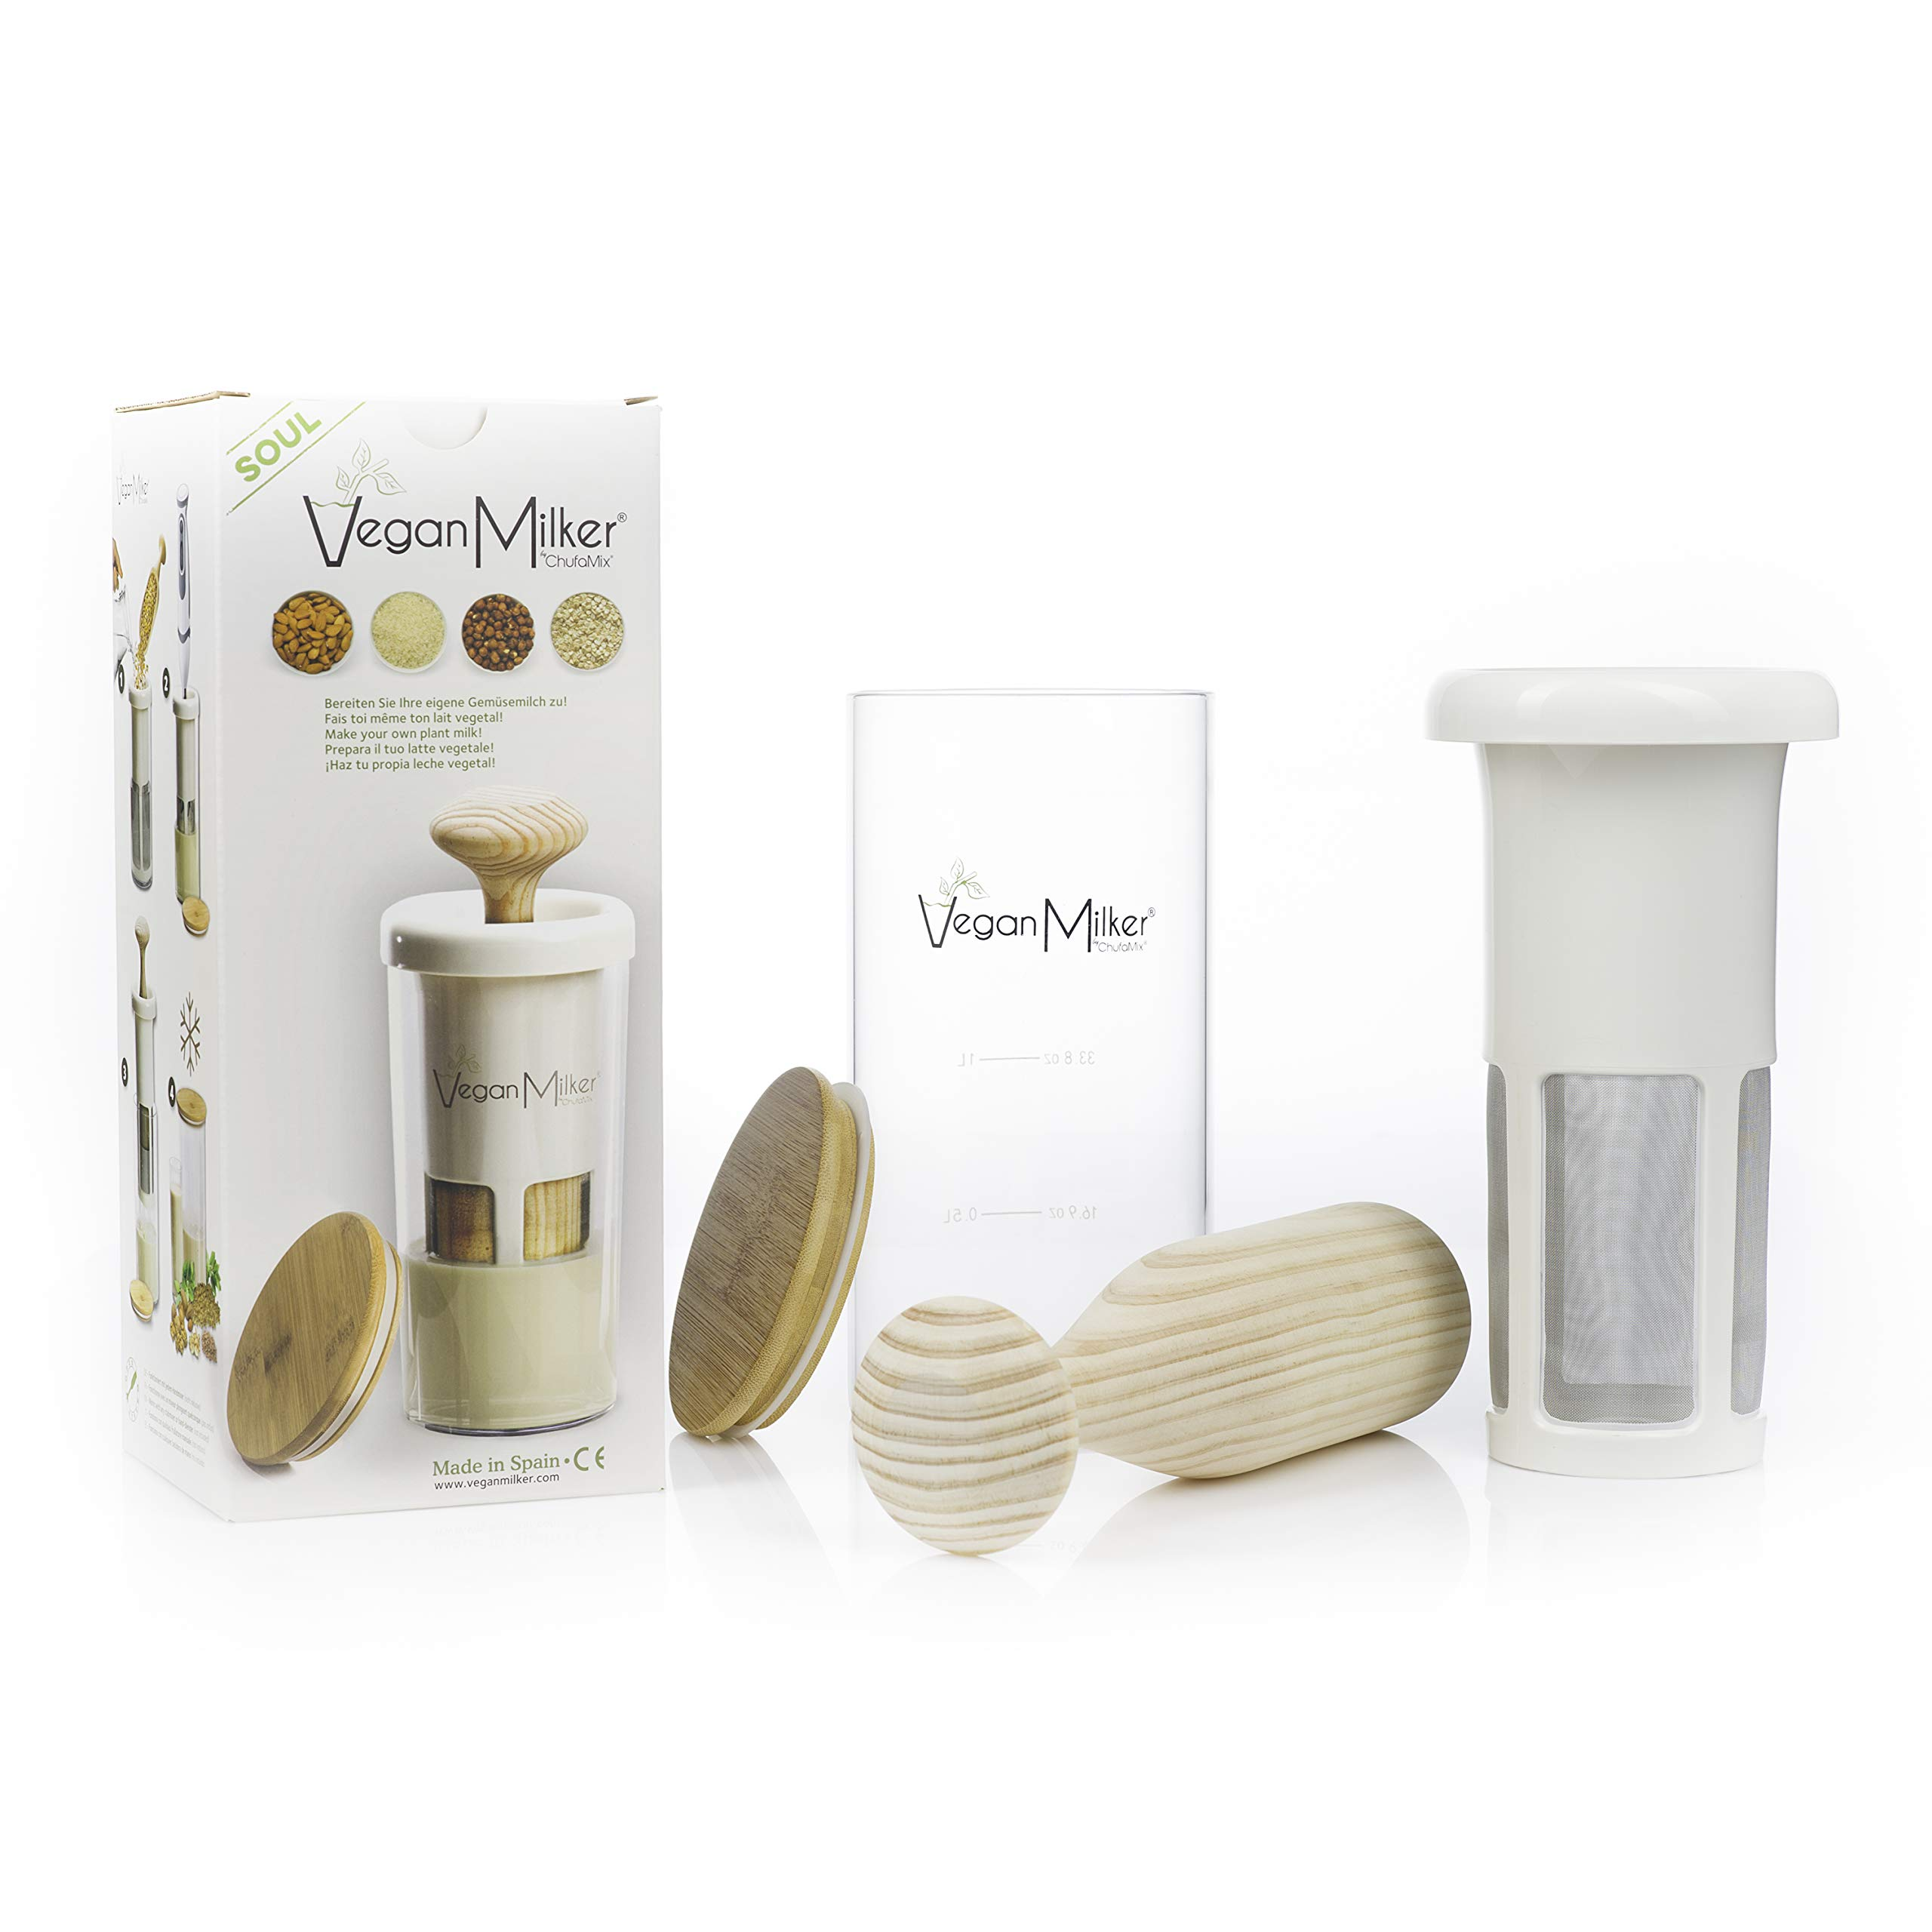 VEGAN MILKER SOUL, kitchen tool to make plant milks from any nut, grain or seed. 1 liter in 1 minute. Thermal shock resistant glass. Bamboo lid. Wooden mortar. Made in Europe. Free Recipe E-Book (PDF) by Chufamix